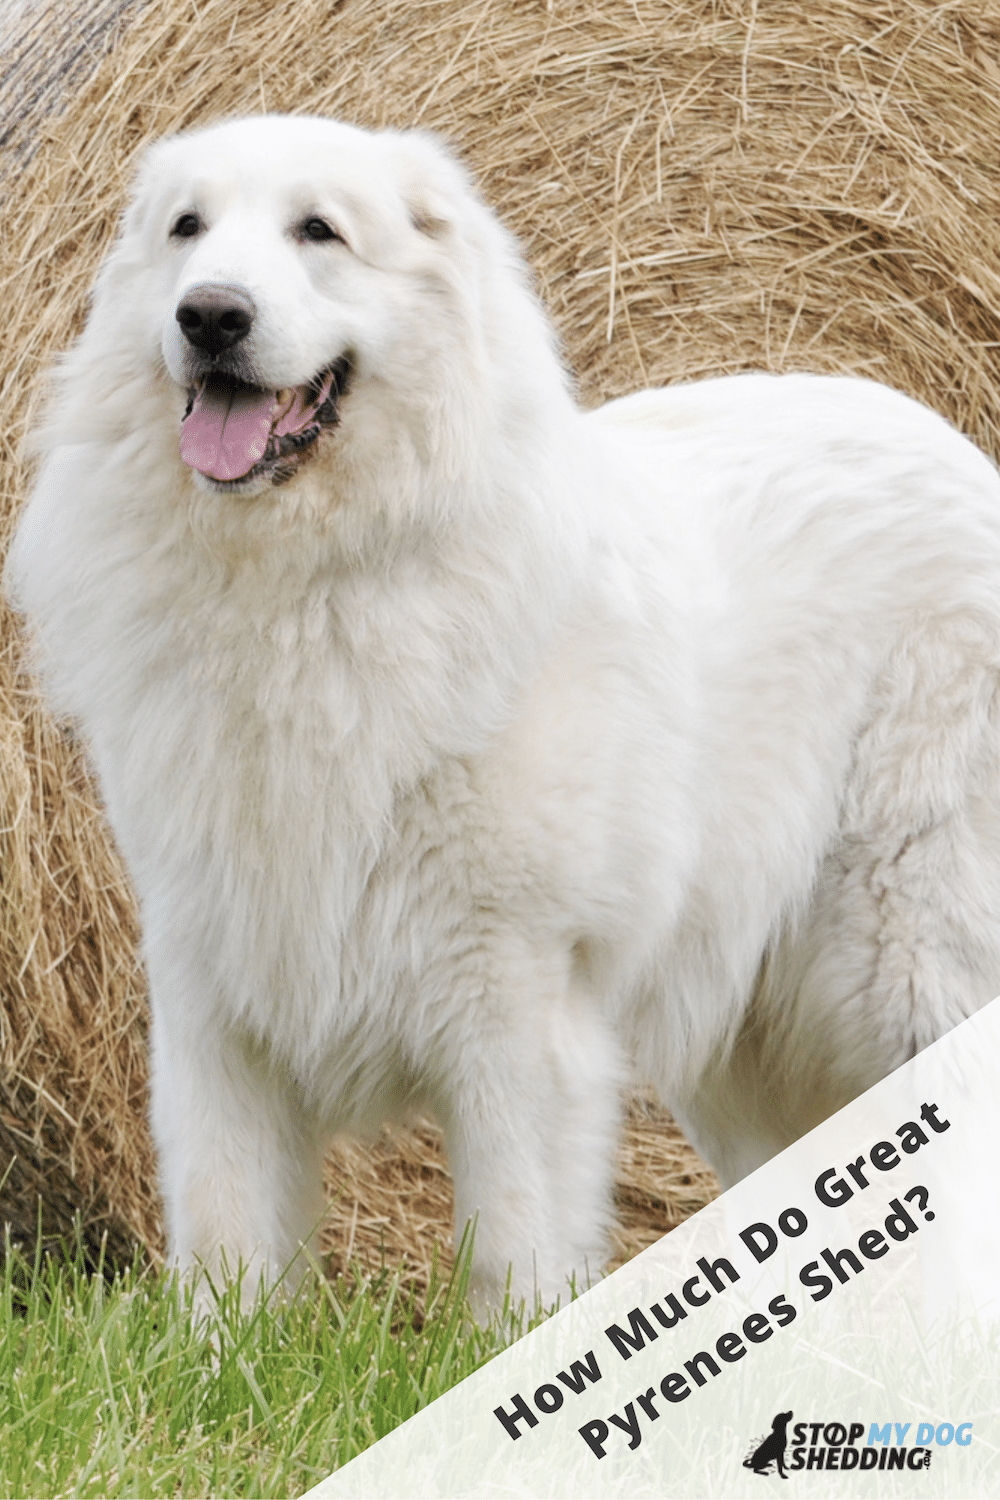 Do Great Pyrenees Shed? (All You Need to Know)